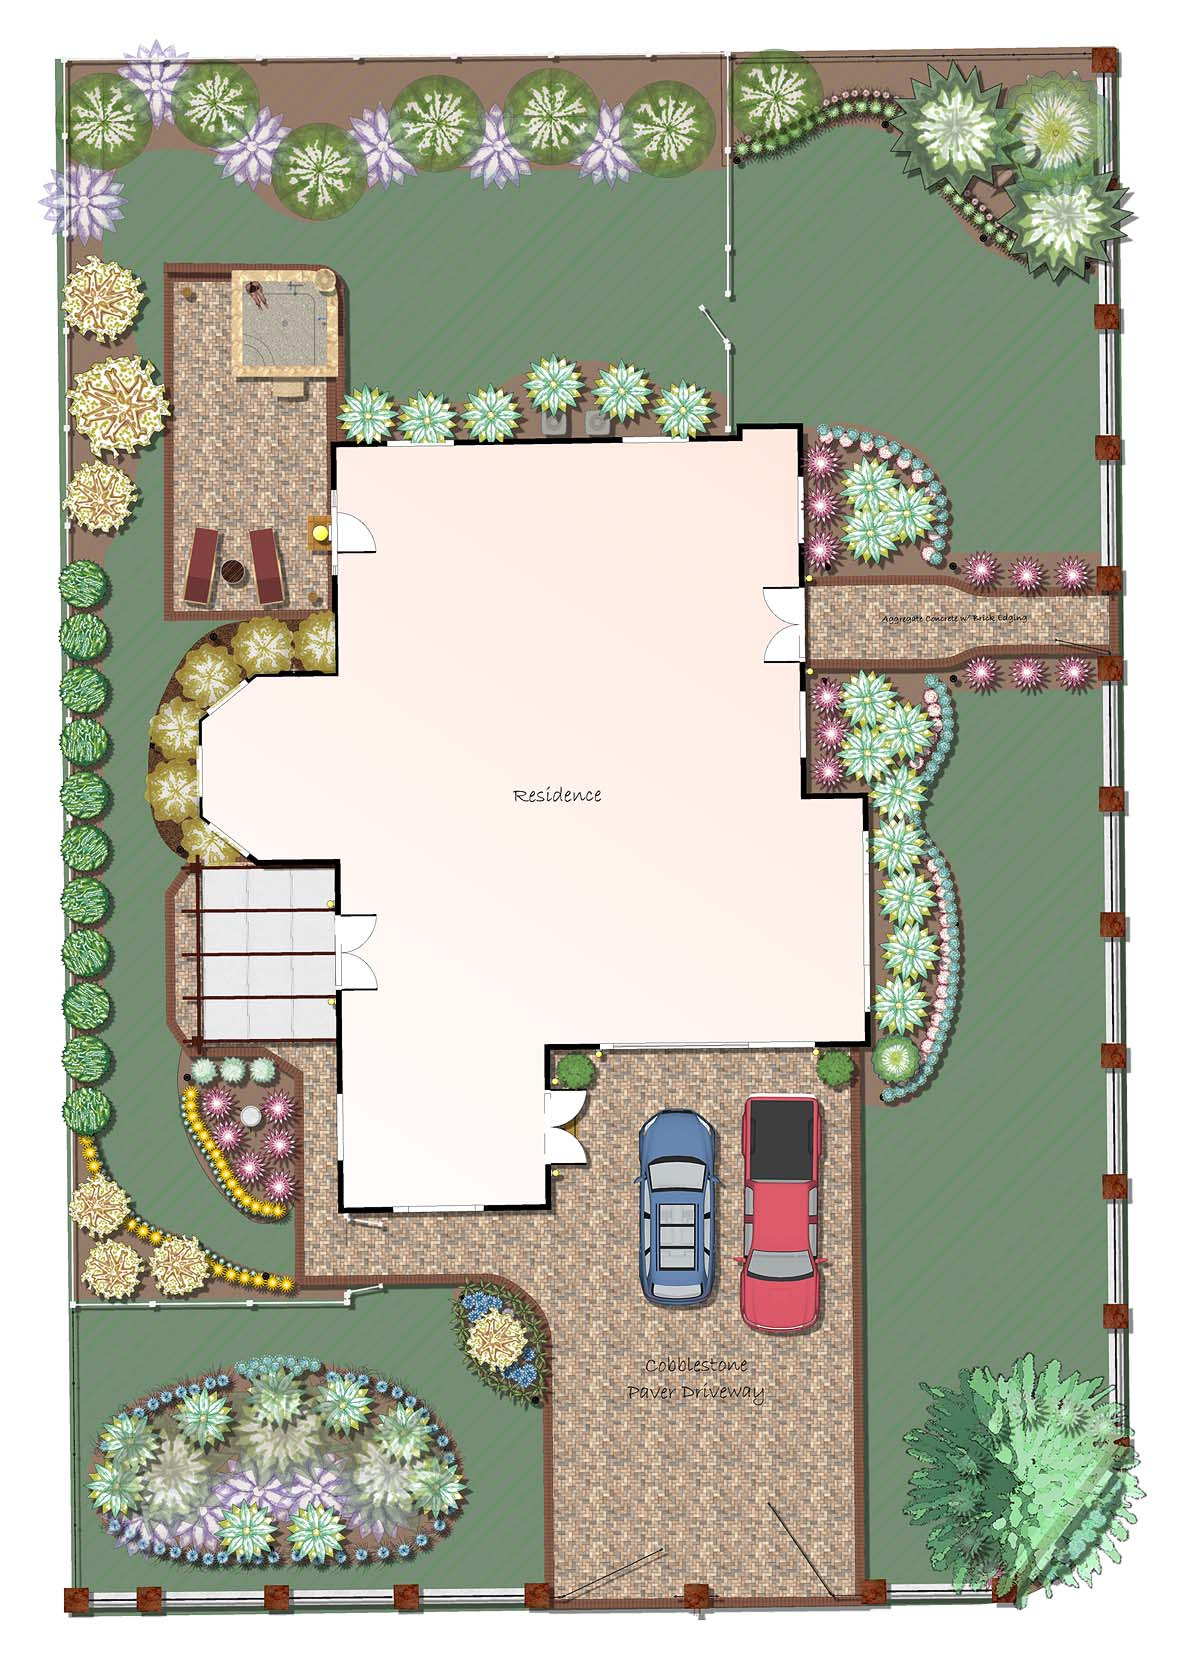 Draw Your Own House Plans App Lovely Professional Landscape software